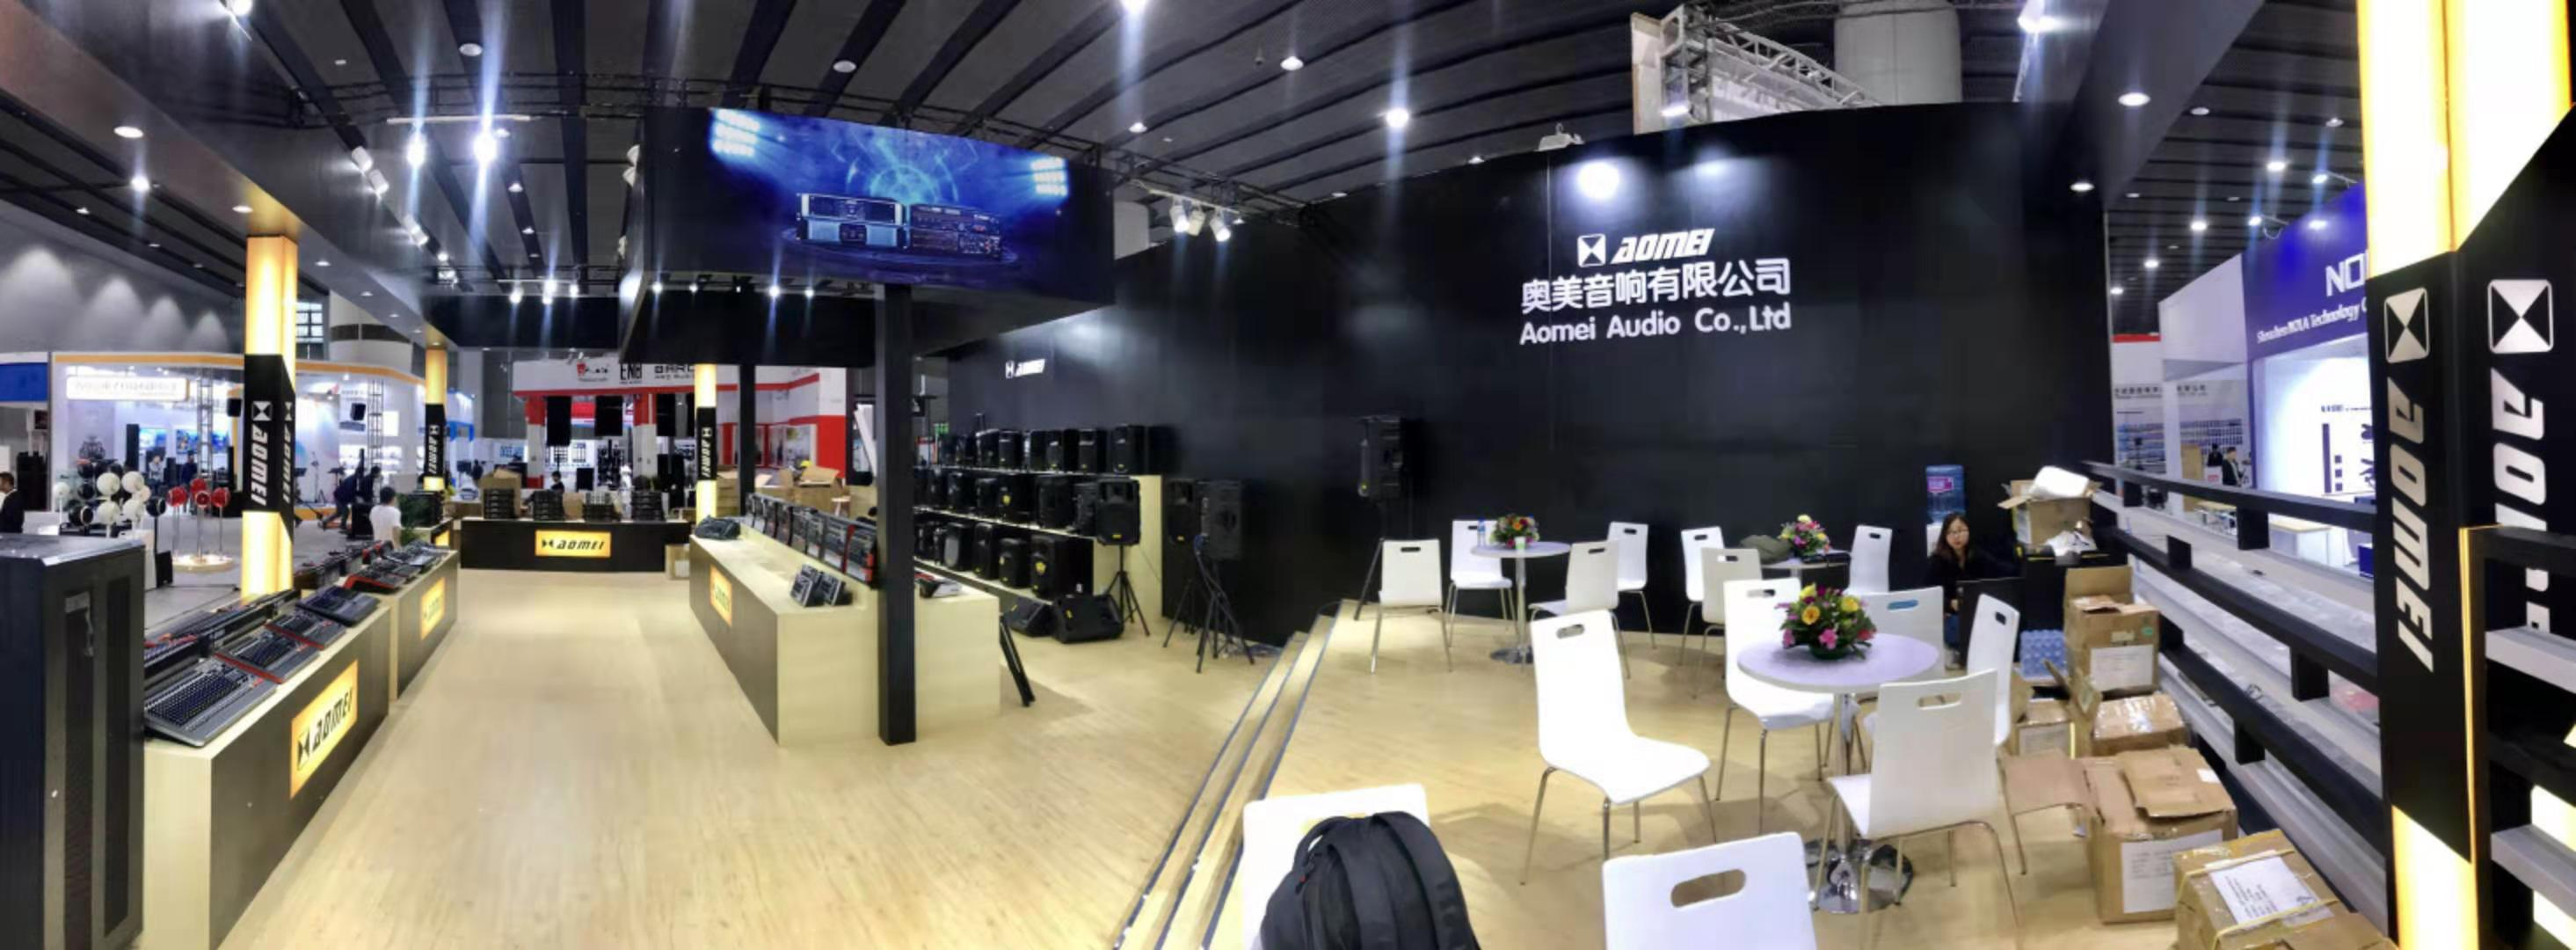 2019 Guangzhou Exhibition